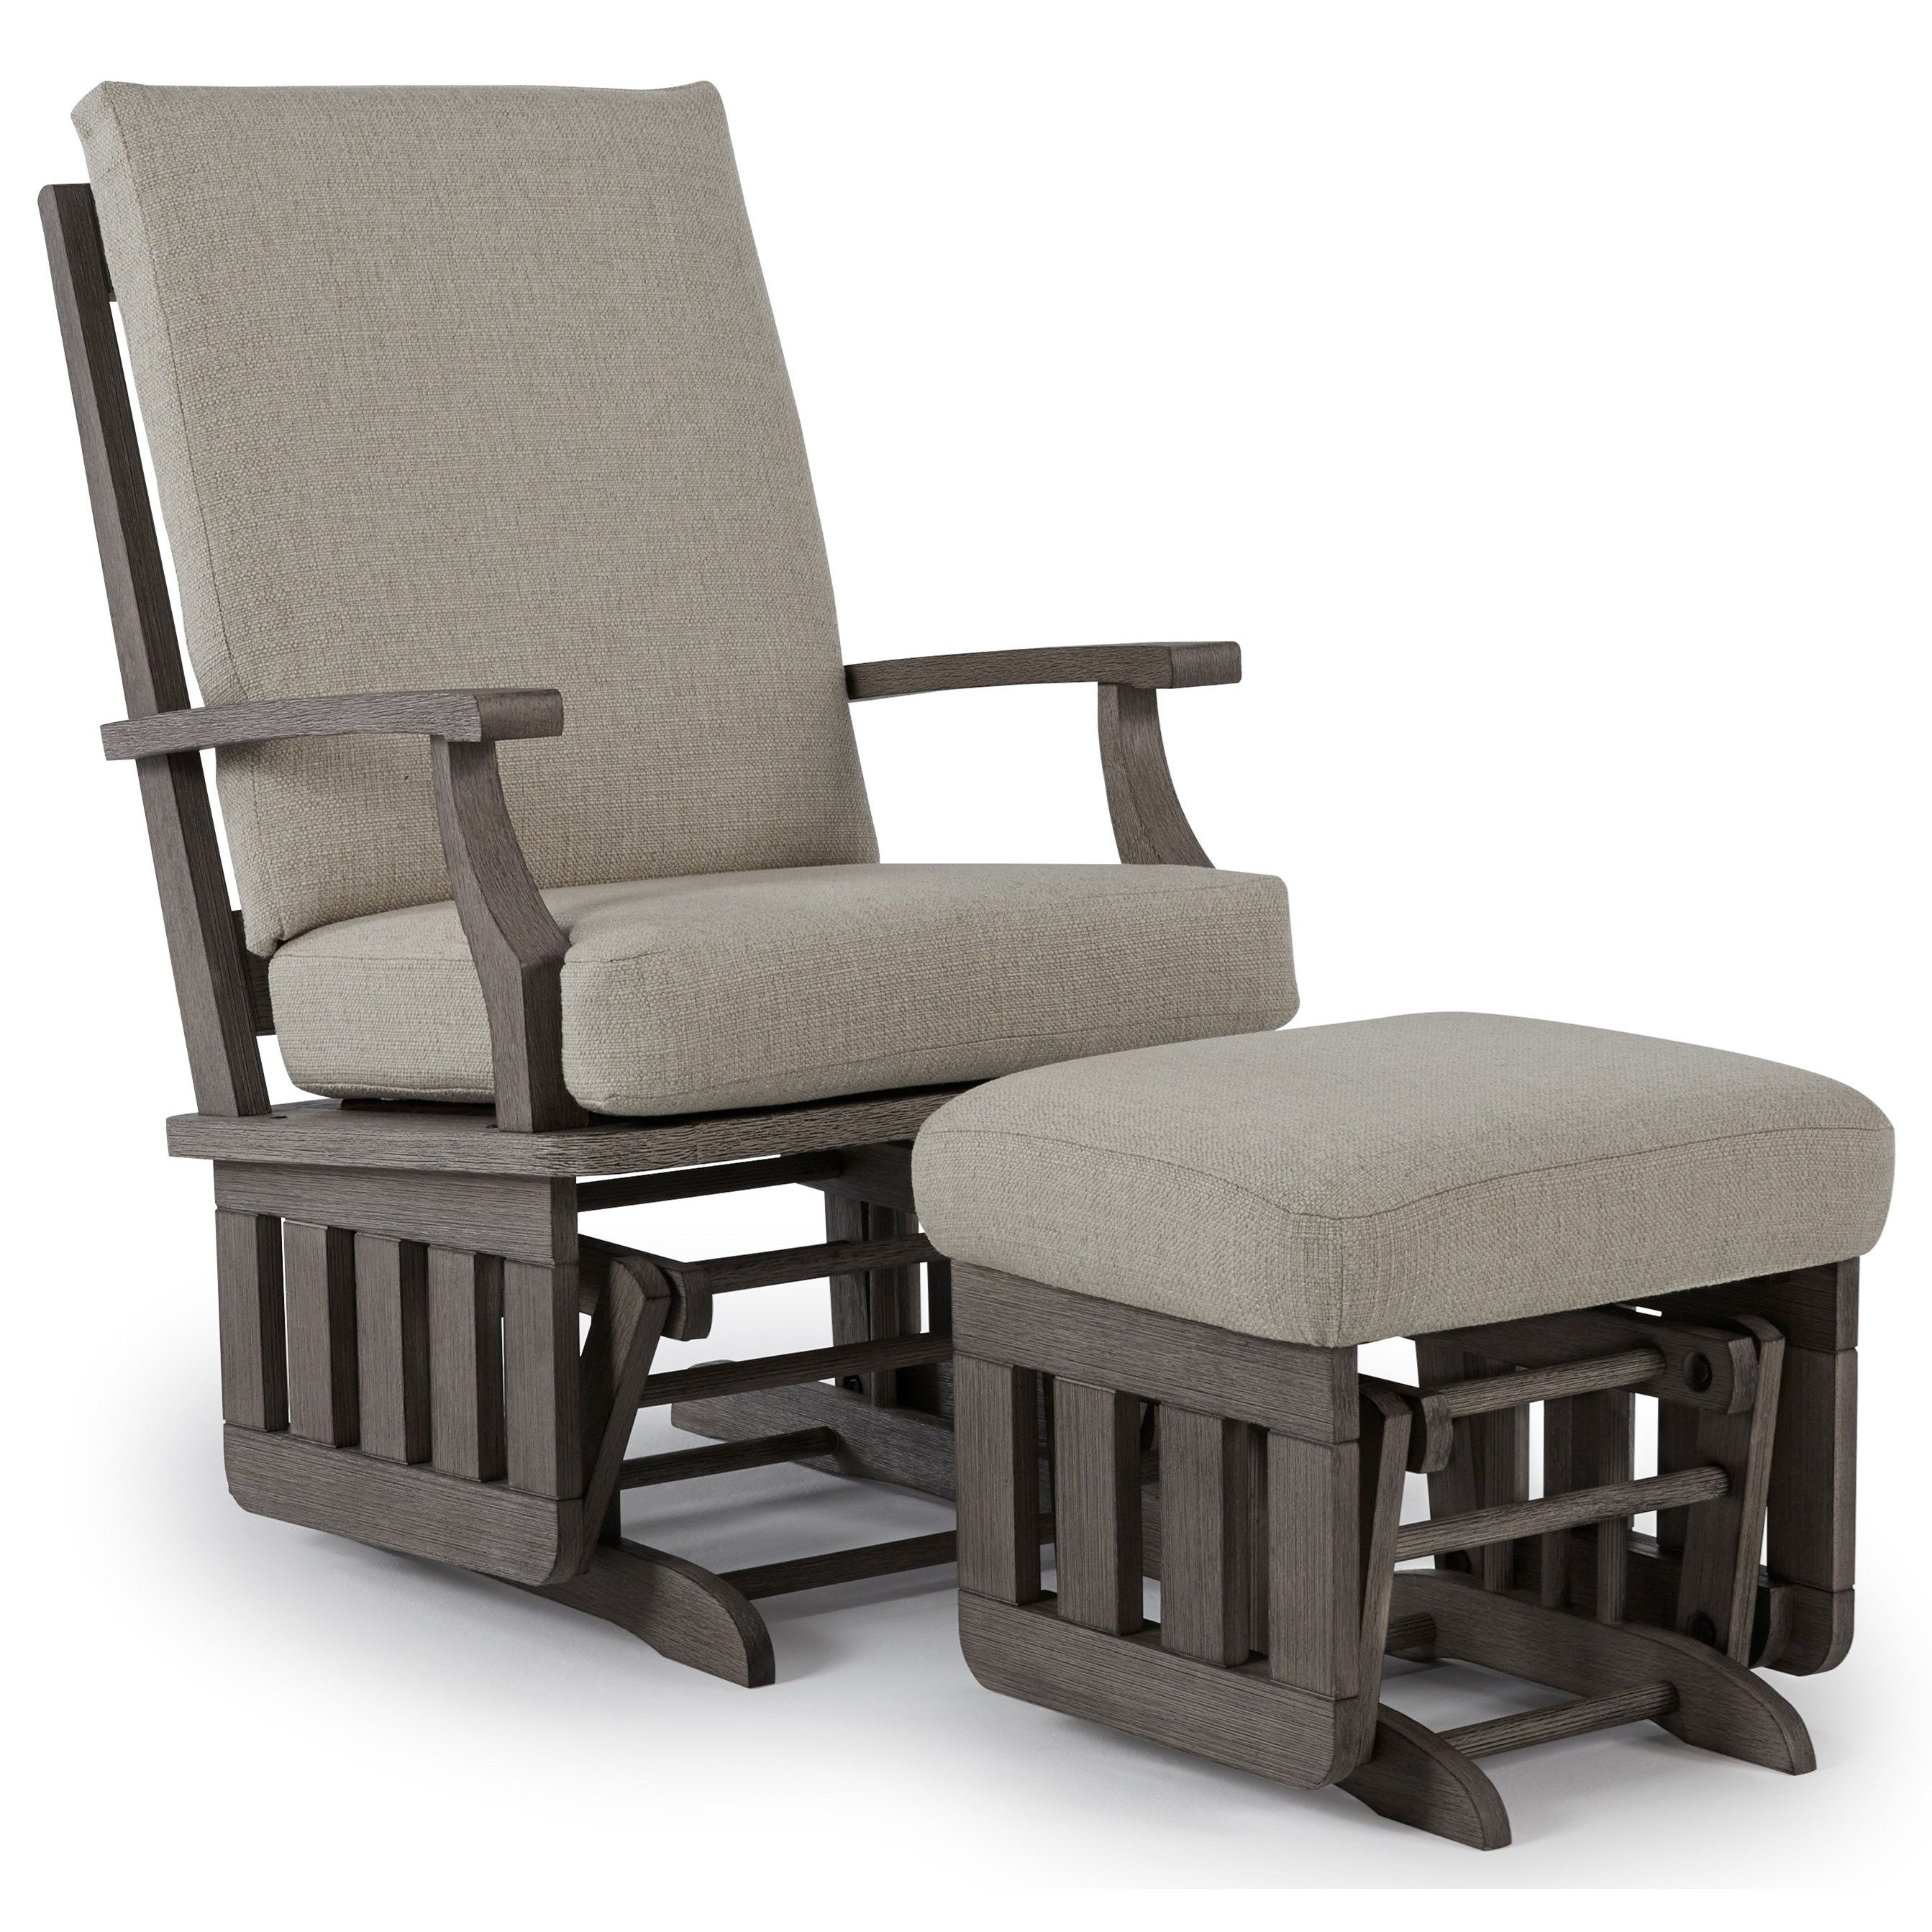 Heather Glide Rocker and Ottoman by Best Home Furnishings at Walker's Furniture